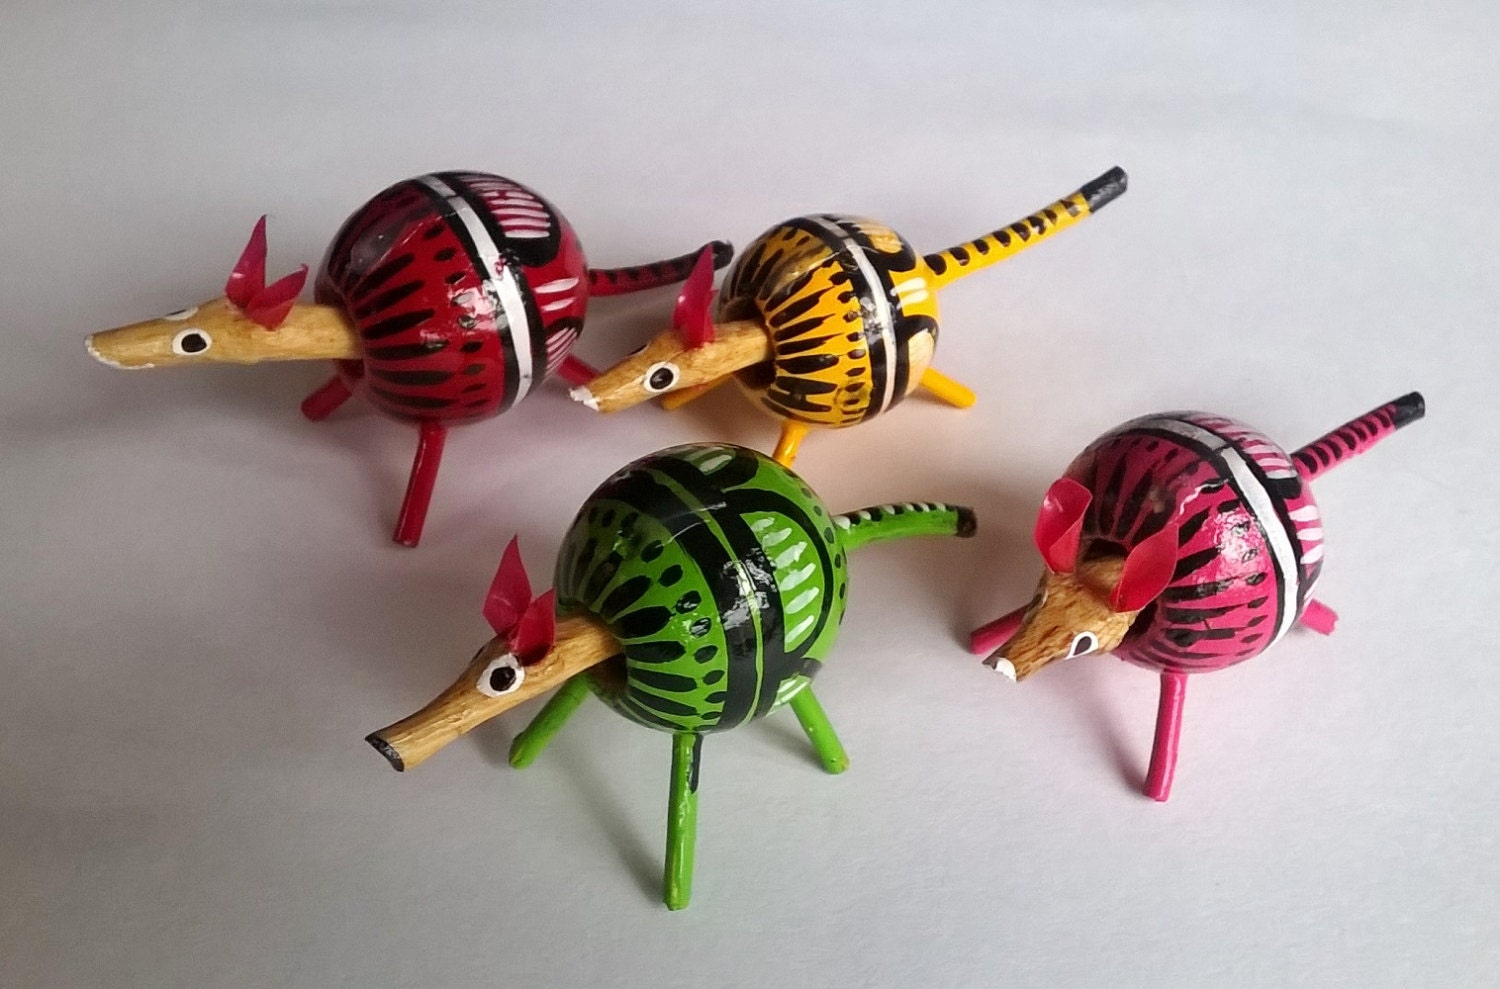 Miniature Wooden Animals Hand Painted Seed Pods Handmade Mexican Armadillo Dash Board Decoration Cute Little Creatures Wooden Toys